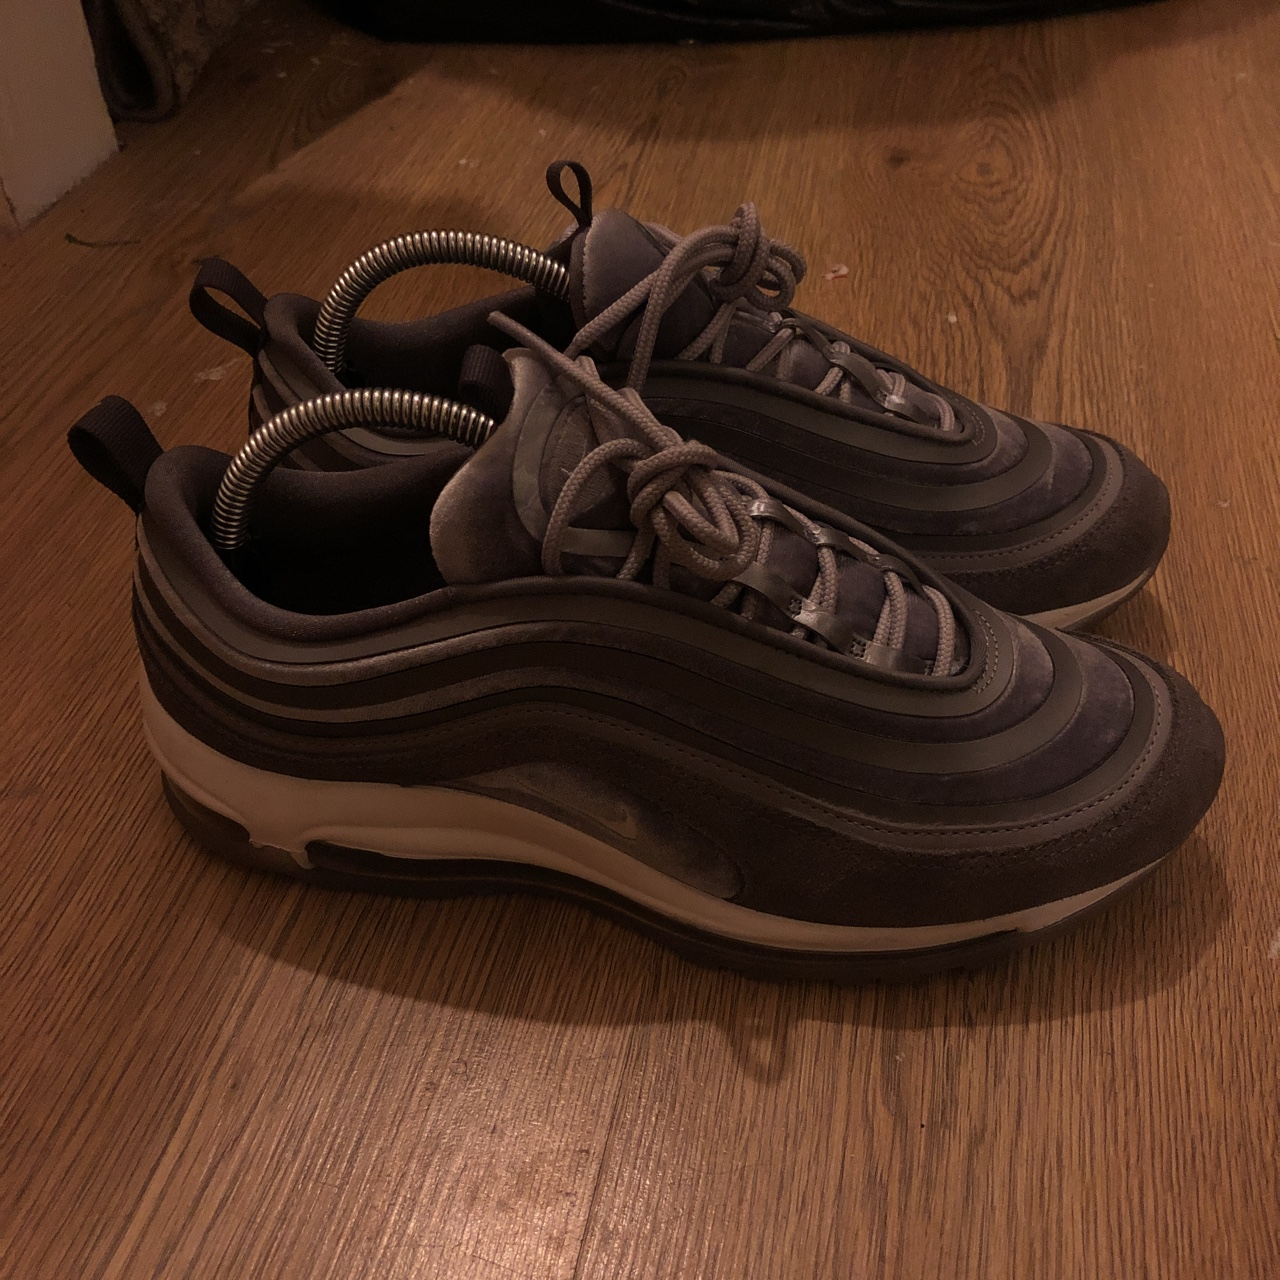 Women's Nike Air Max 97 Ultra Lux Grey. Size 7, worn Depop